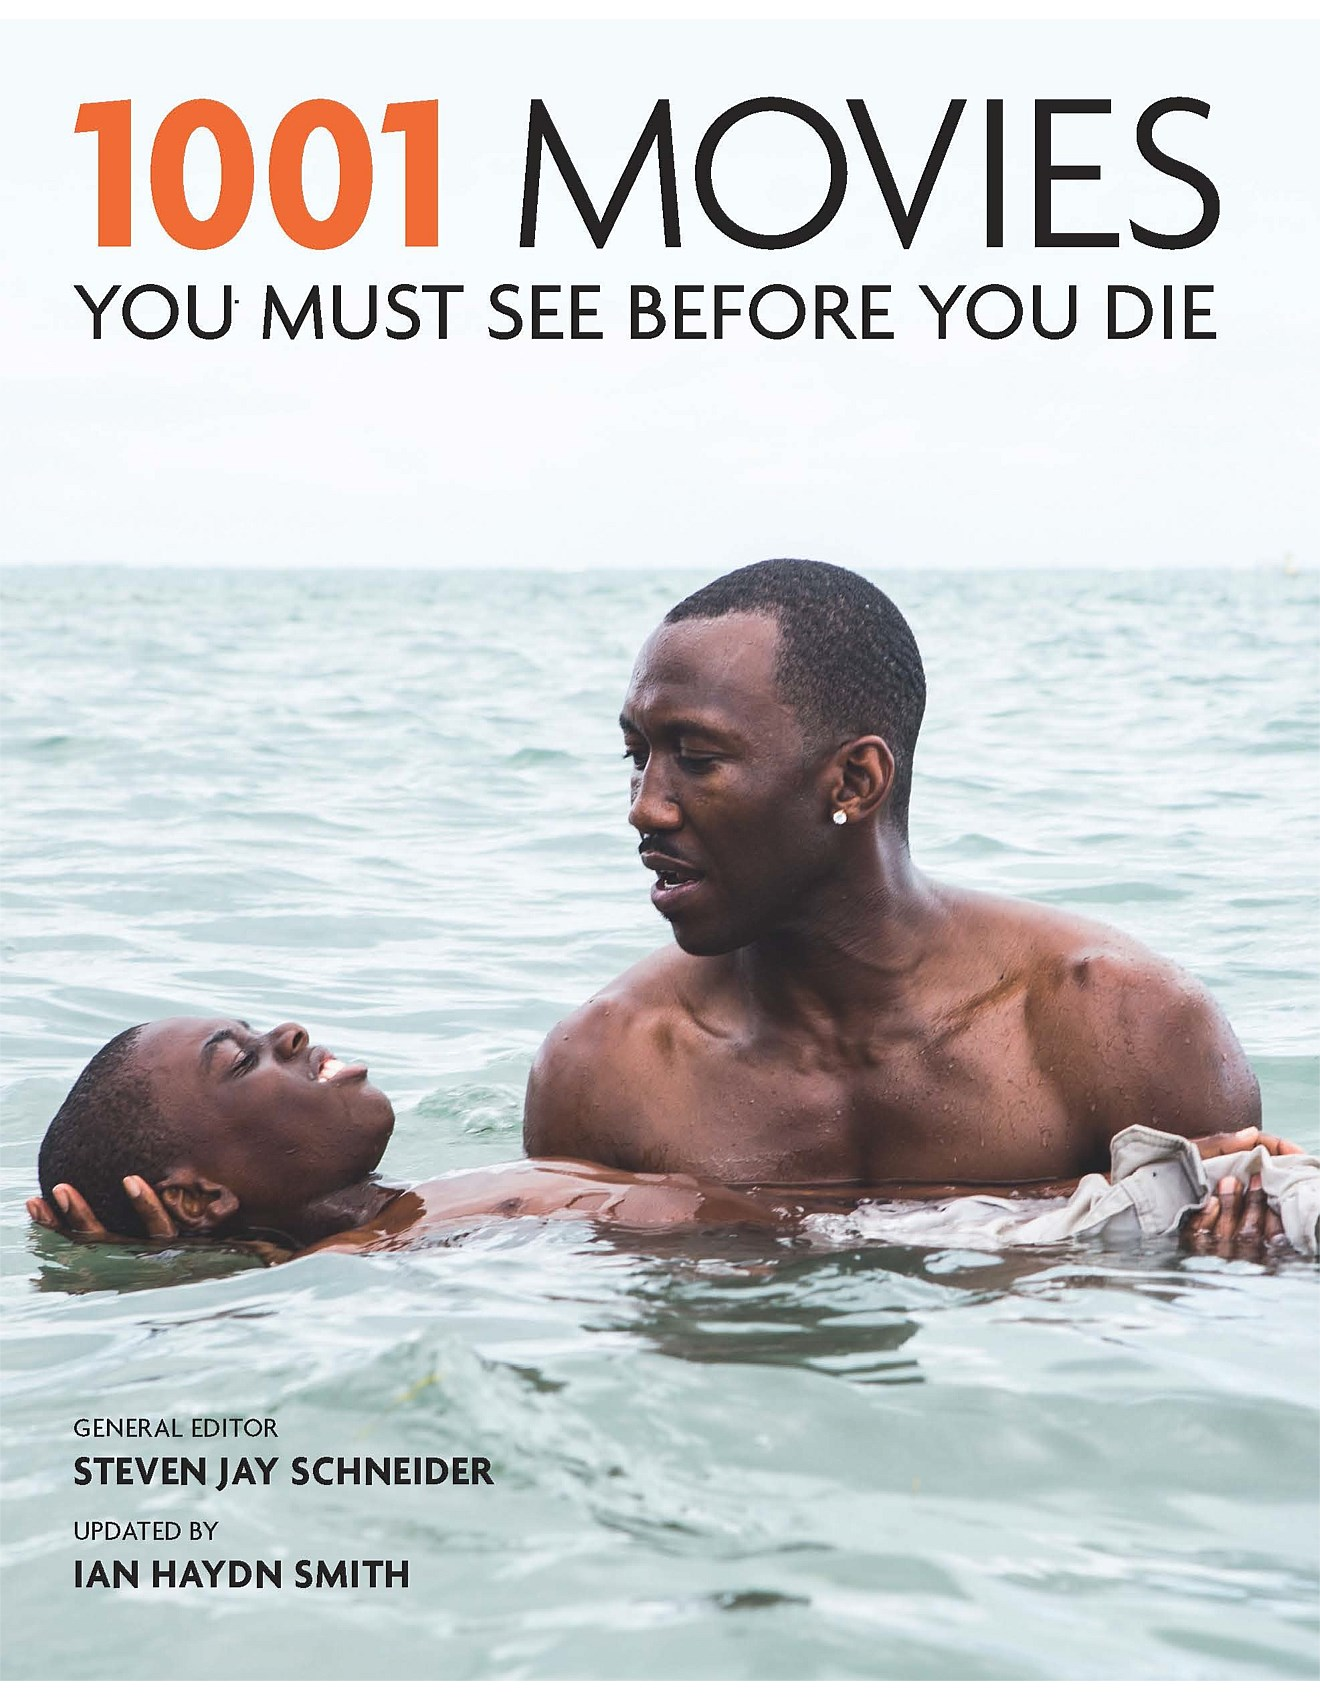 101 scifi movies you must see before you die steven jay